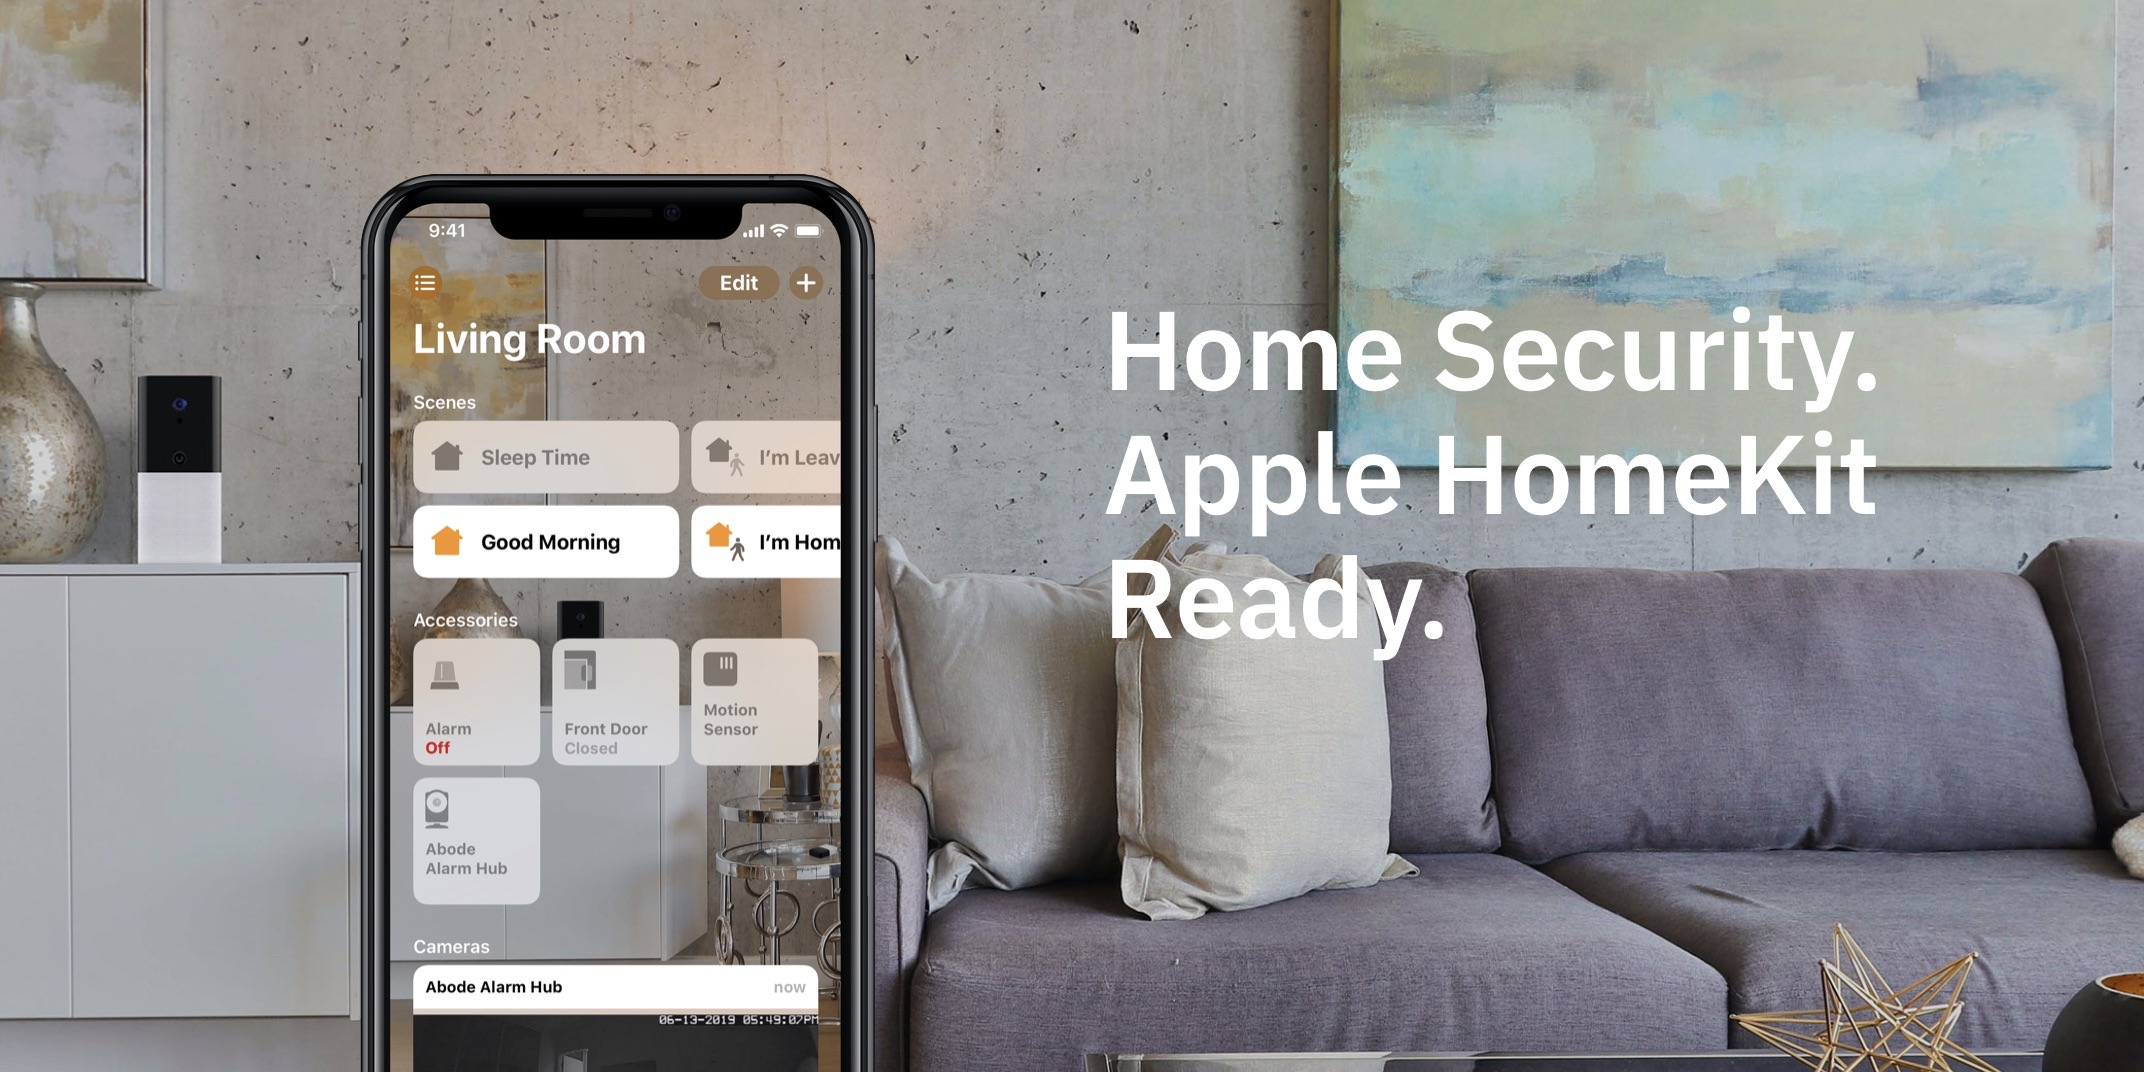 Abode Iota HomeKit home security system